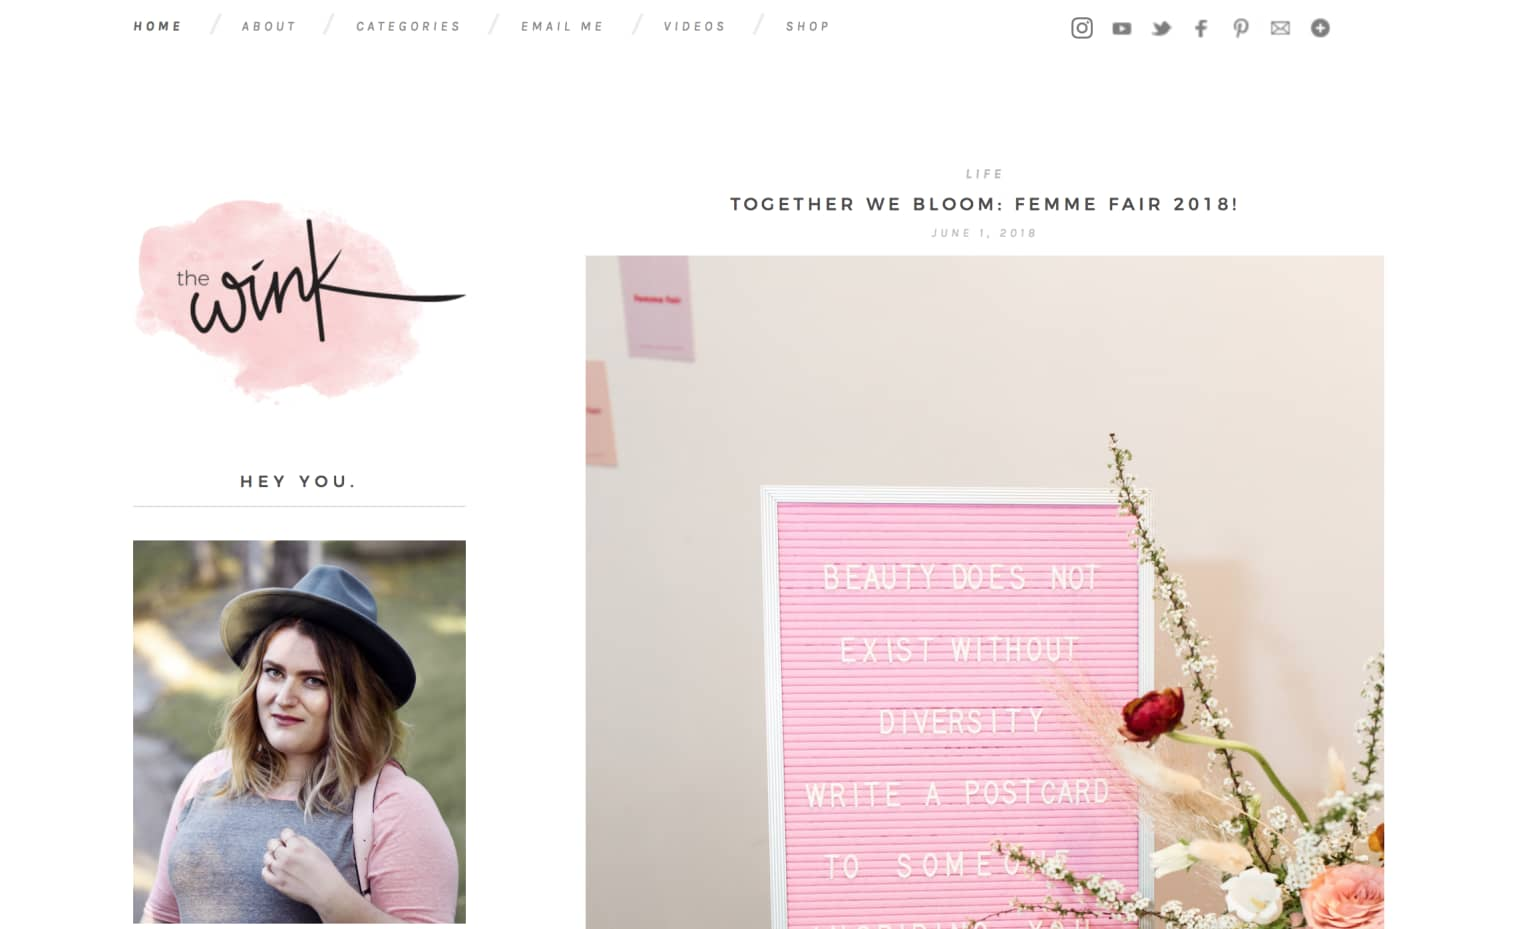 Founder + Editor of Women's Lifestyle Site, The Wink